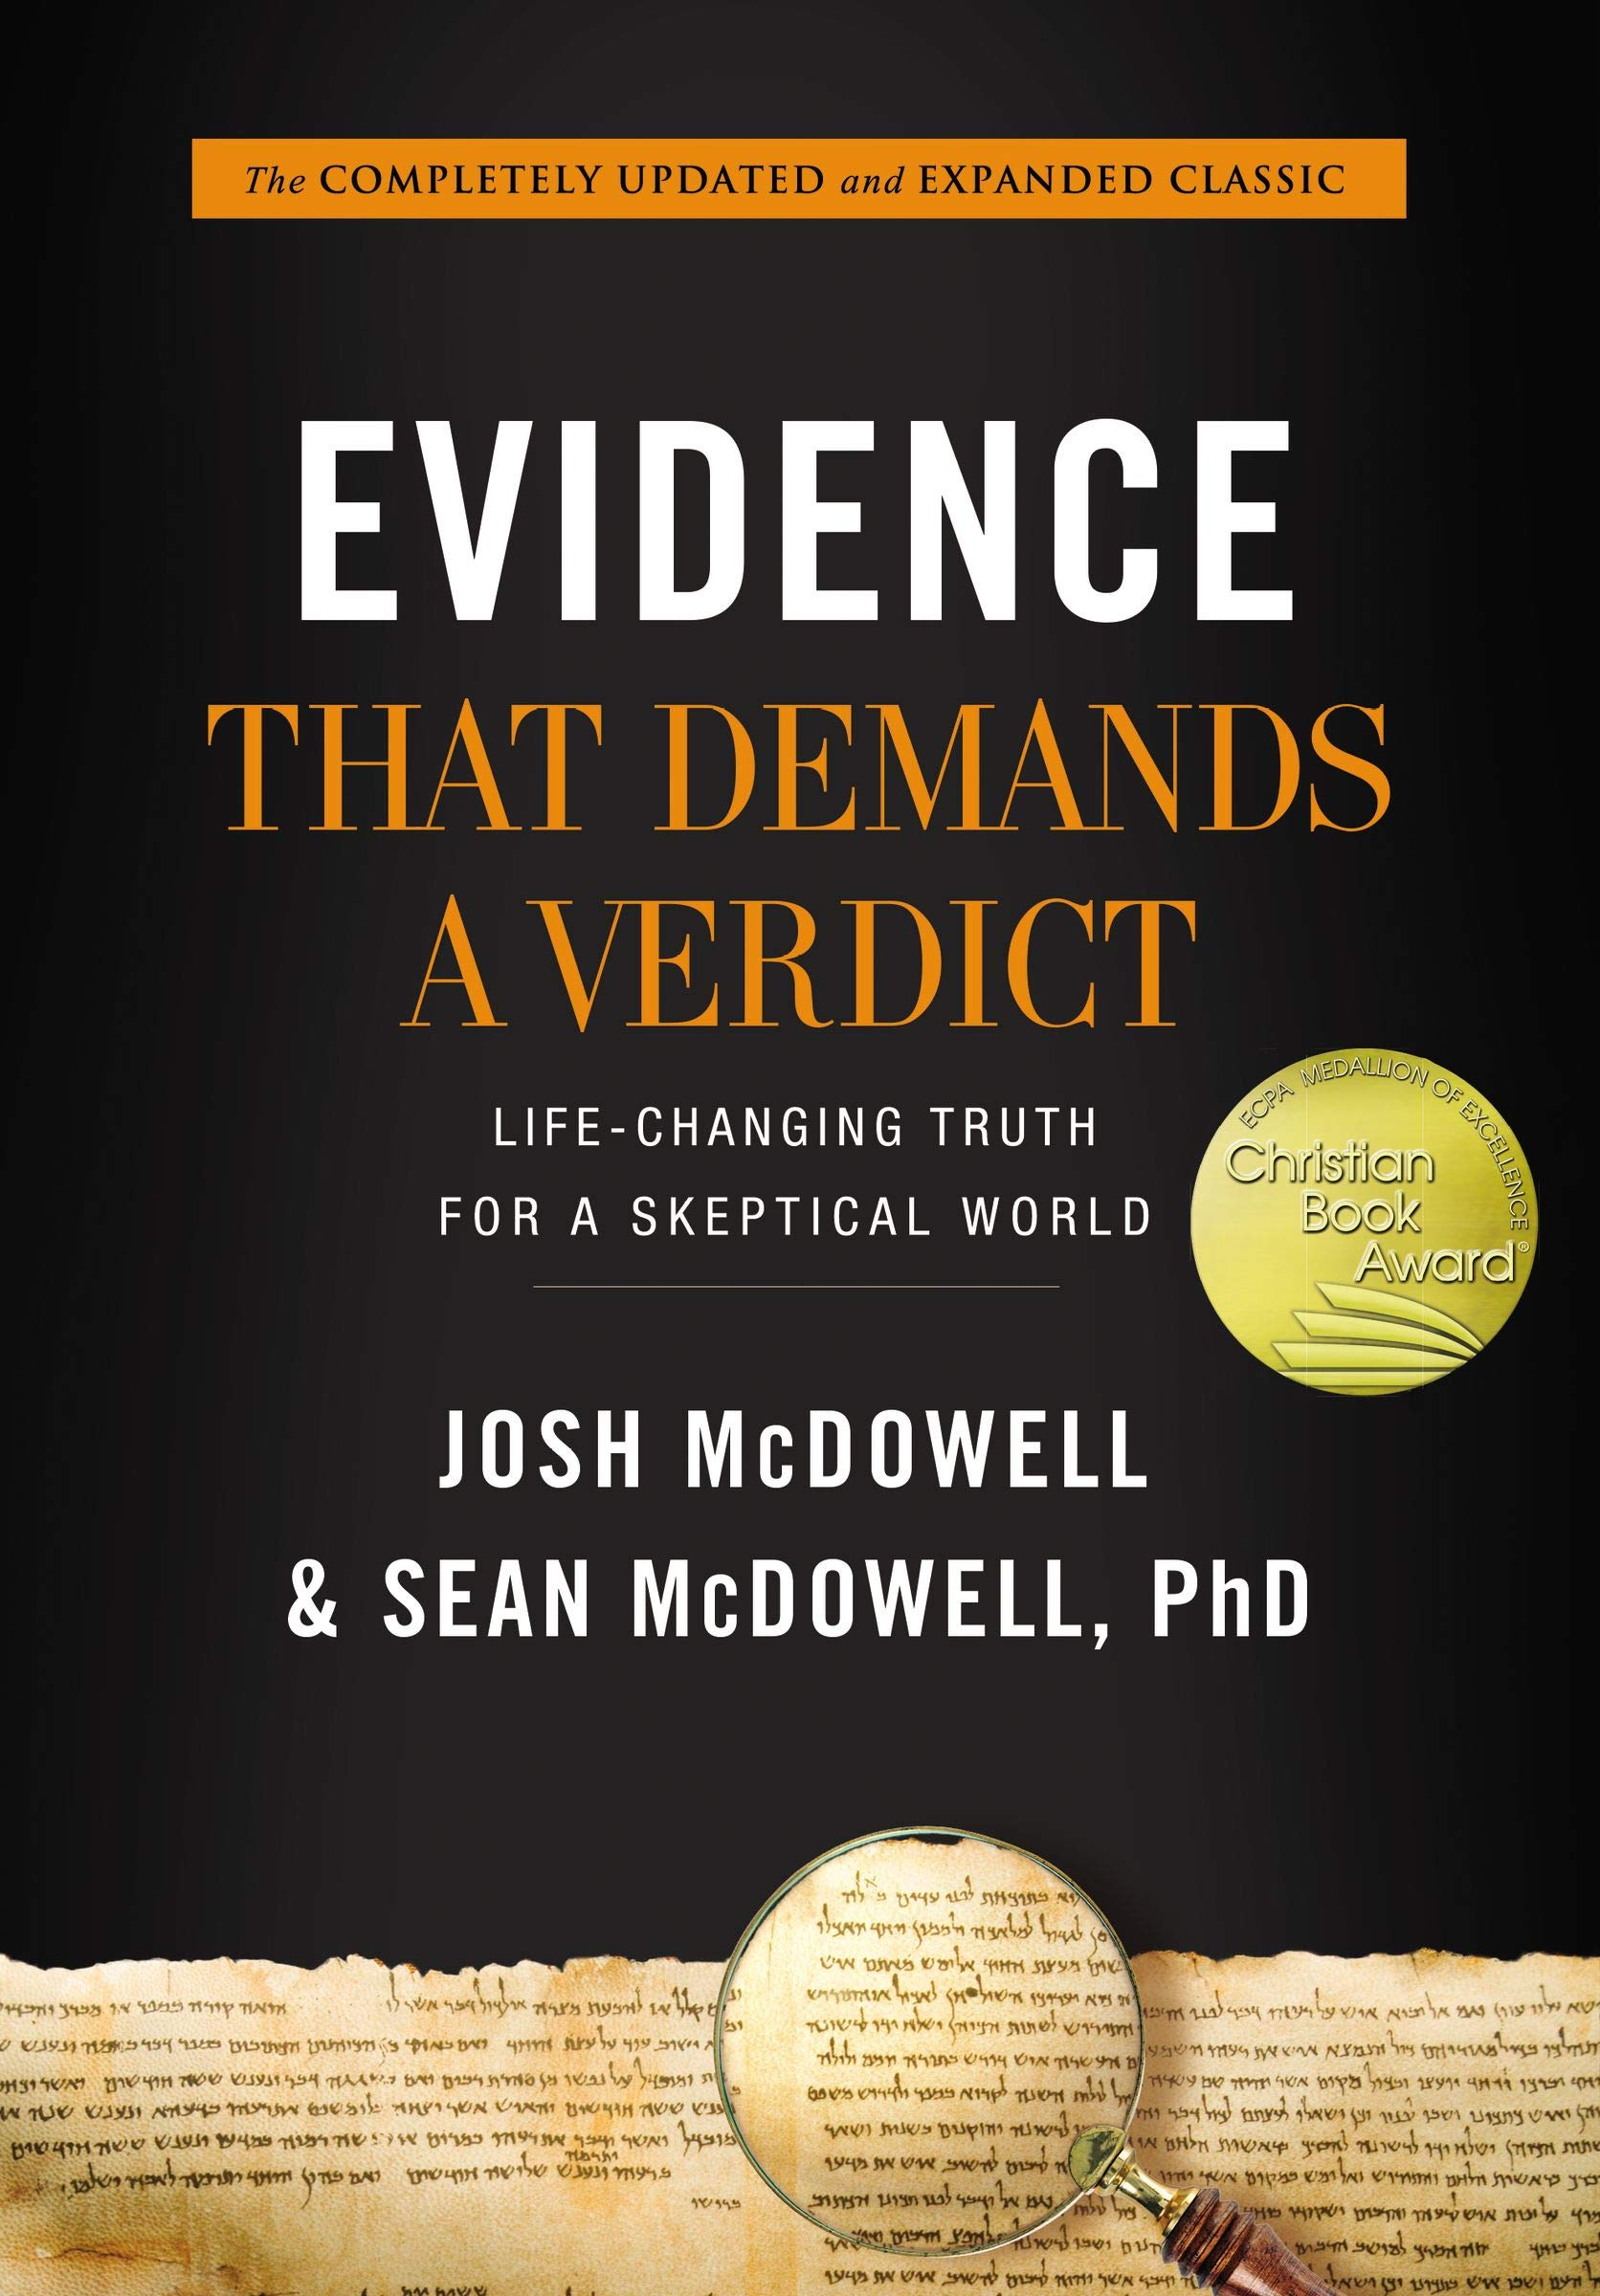 Evidence That Demands a Verdict: Life-Changing Truth for a Skeptical World by HarperCollins Christian Pub.